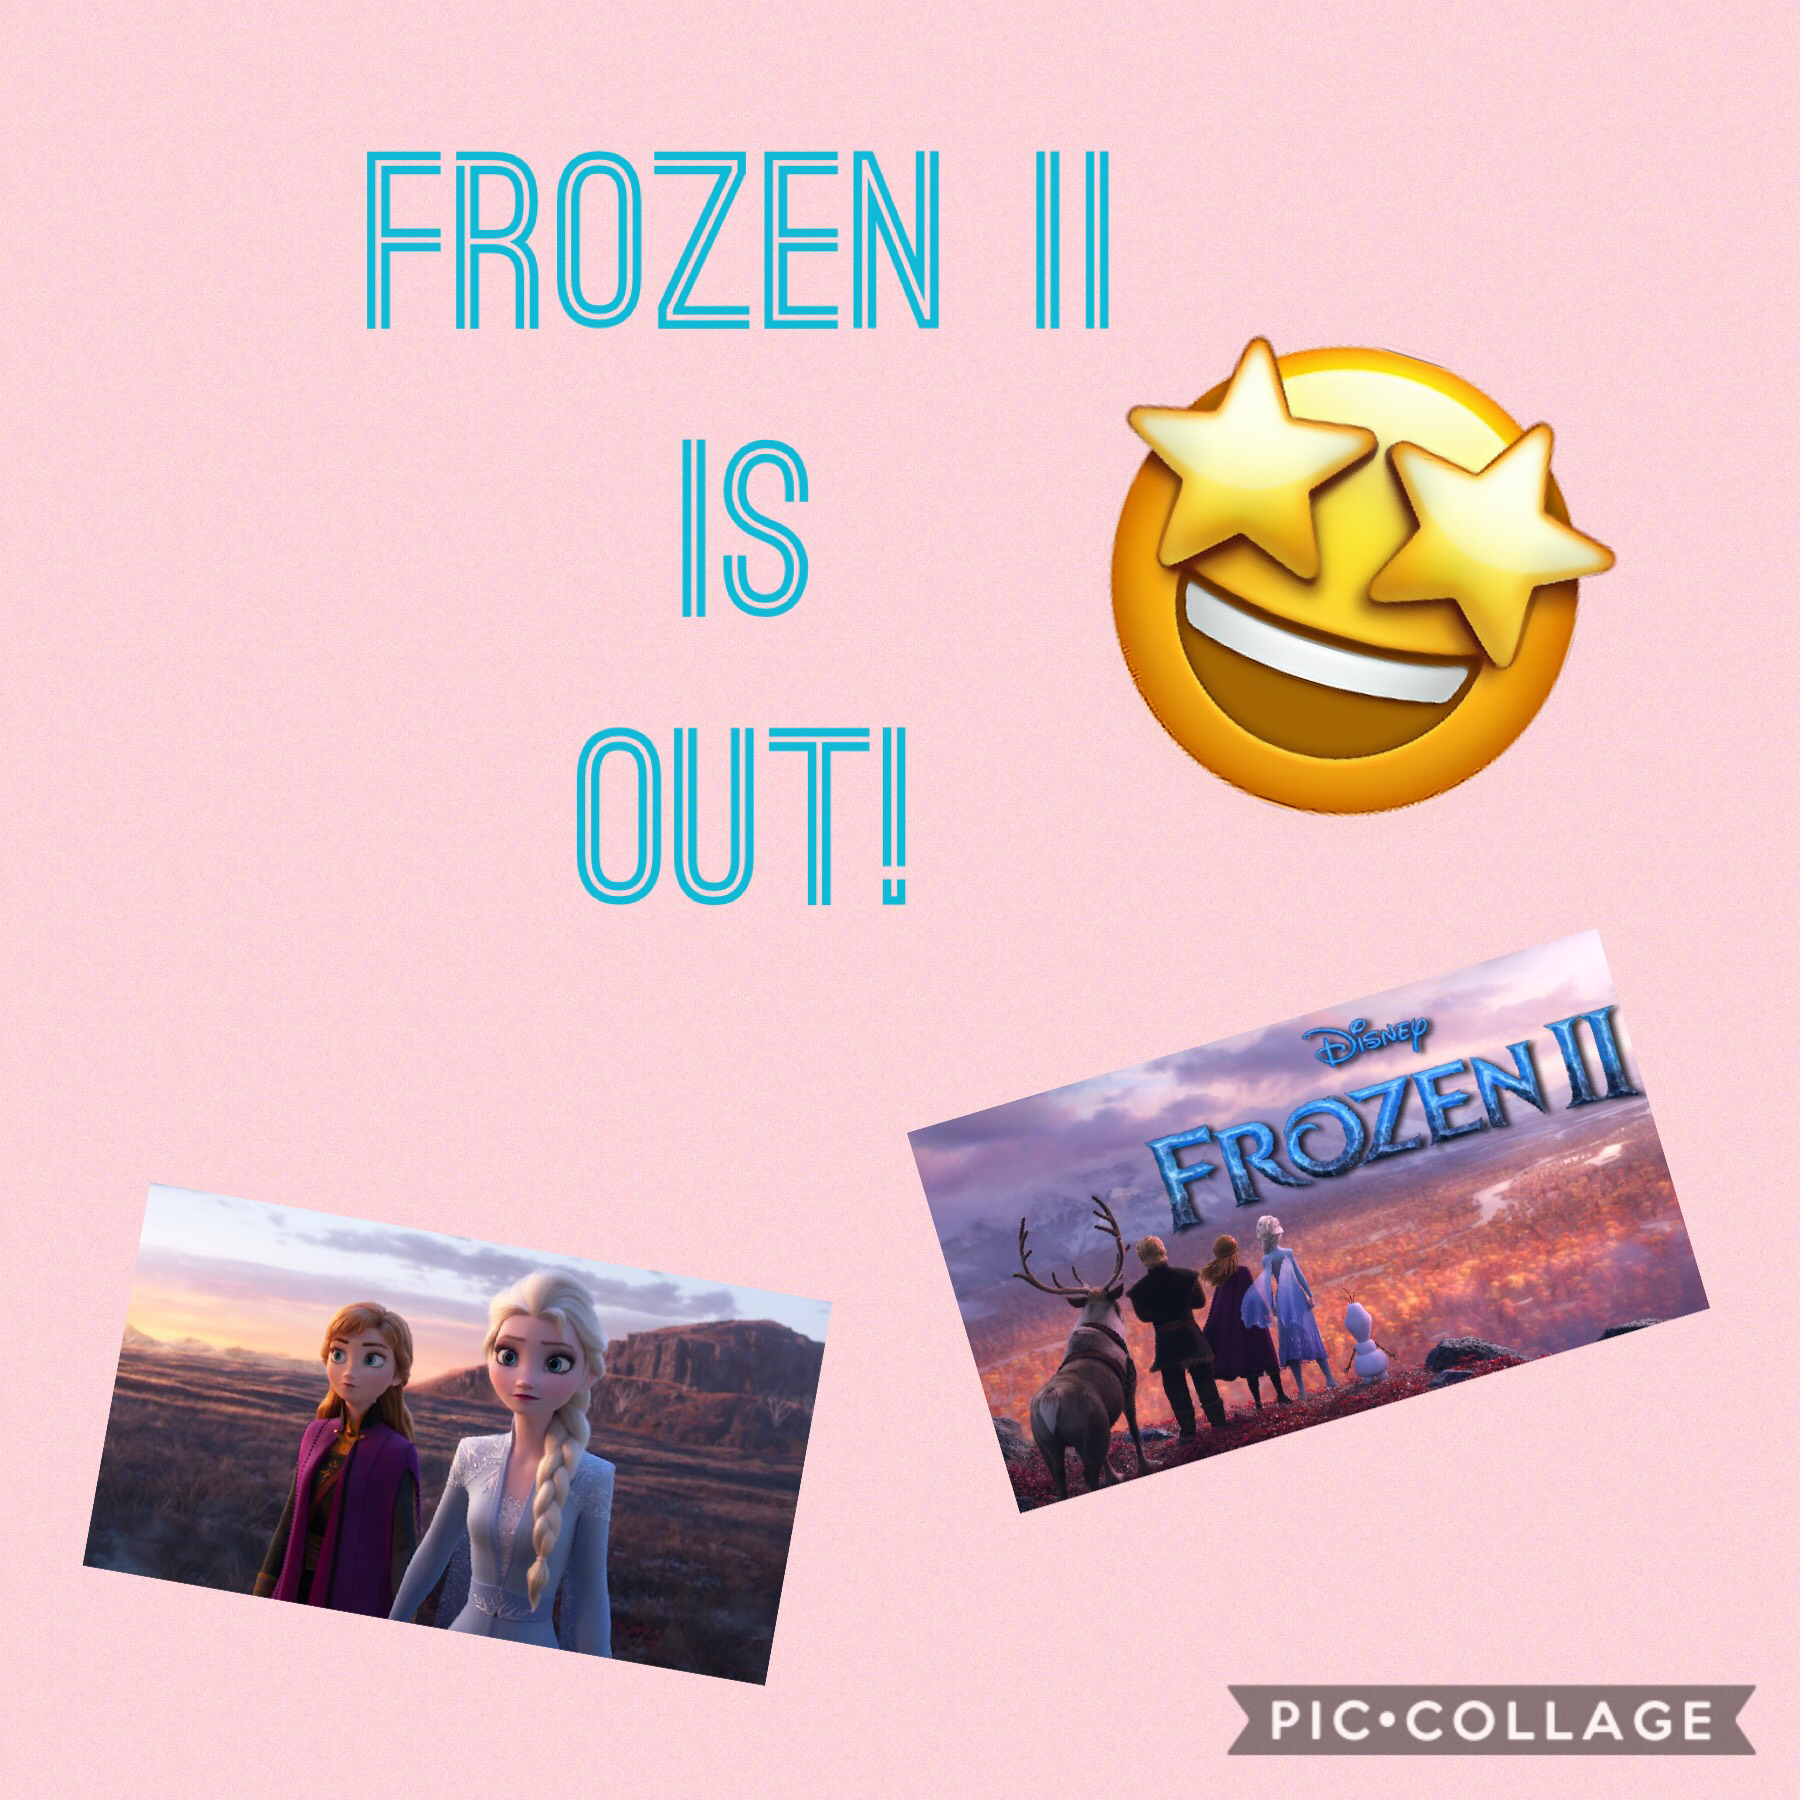 So exiteeed! Check it out and give the pic a ❤️ if you're a Frozen Fan!